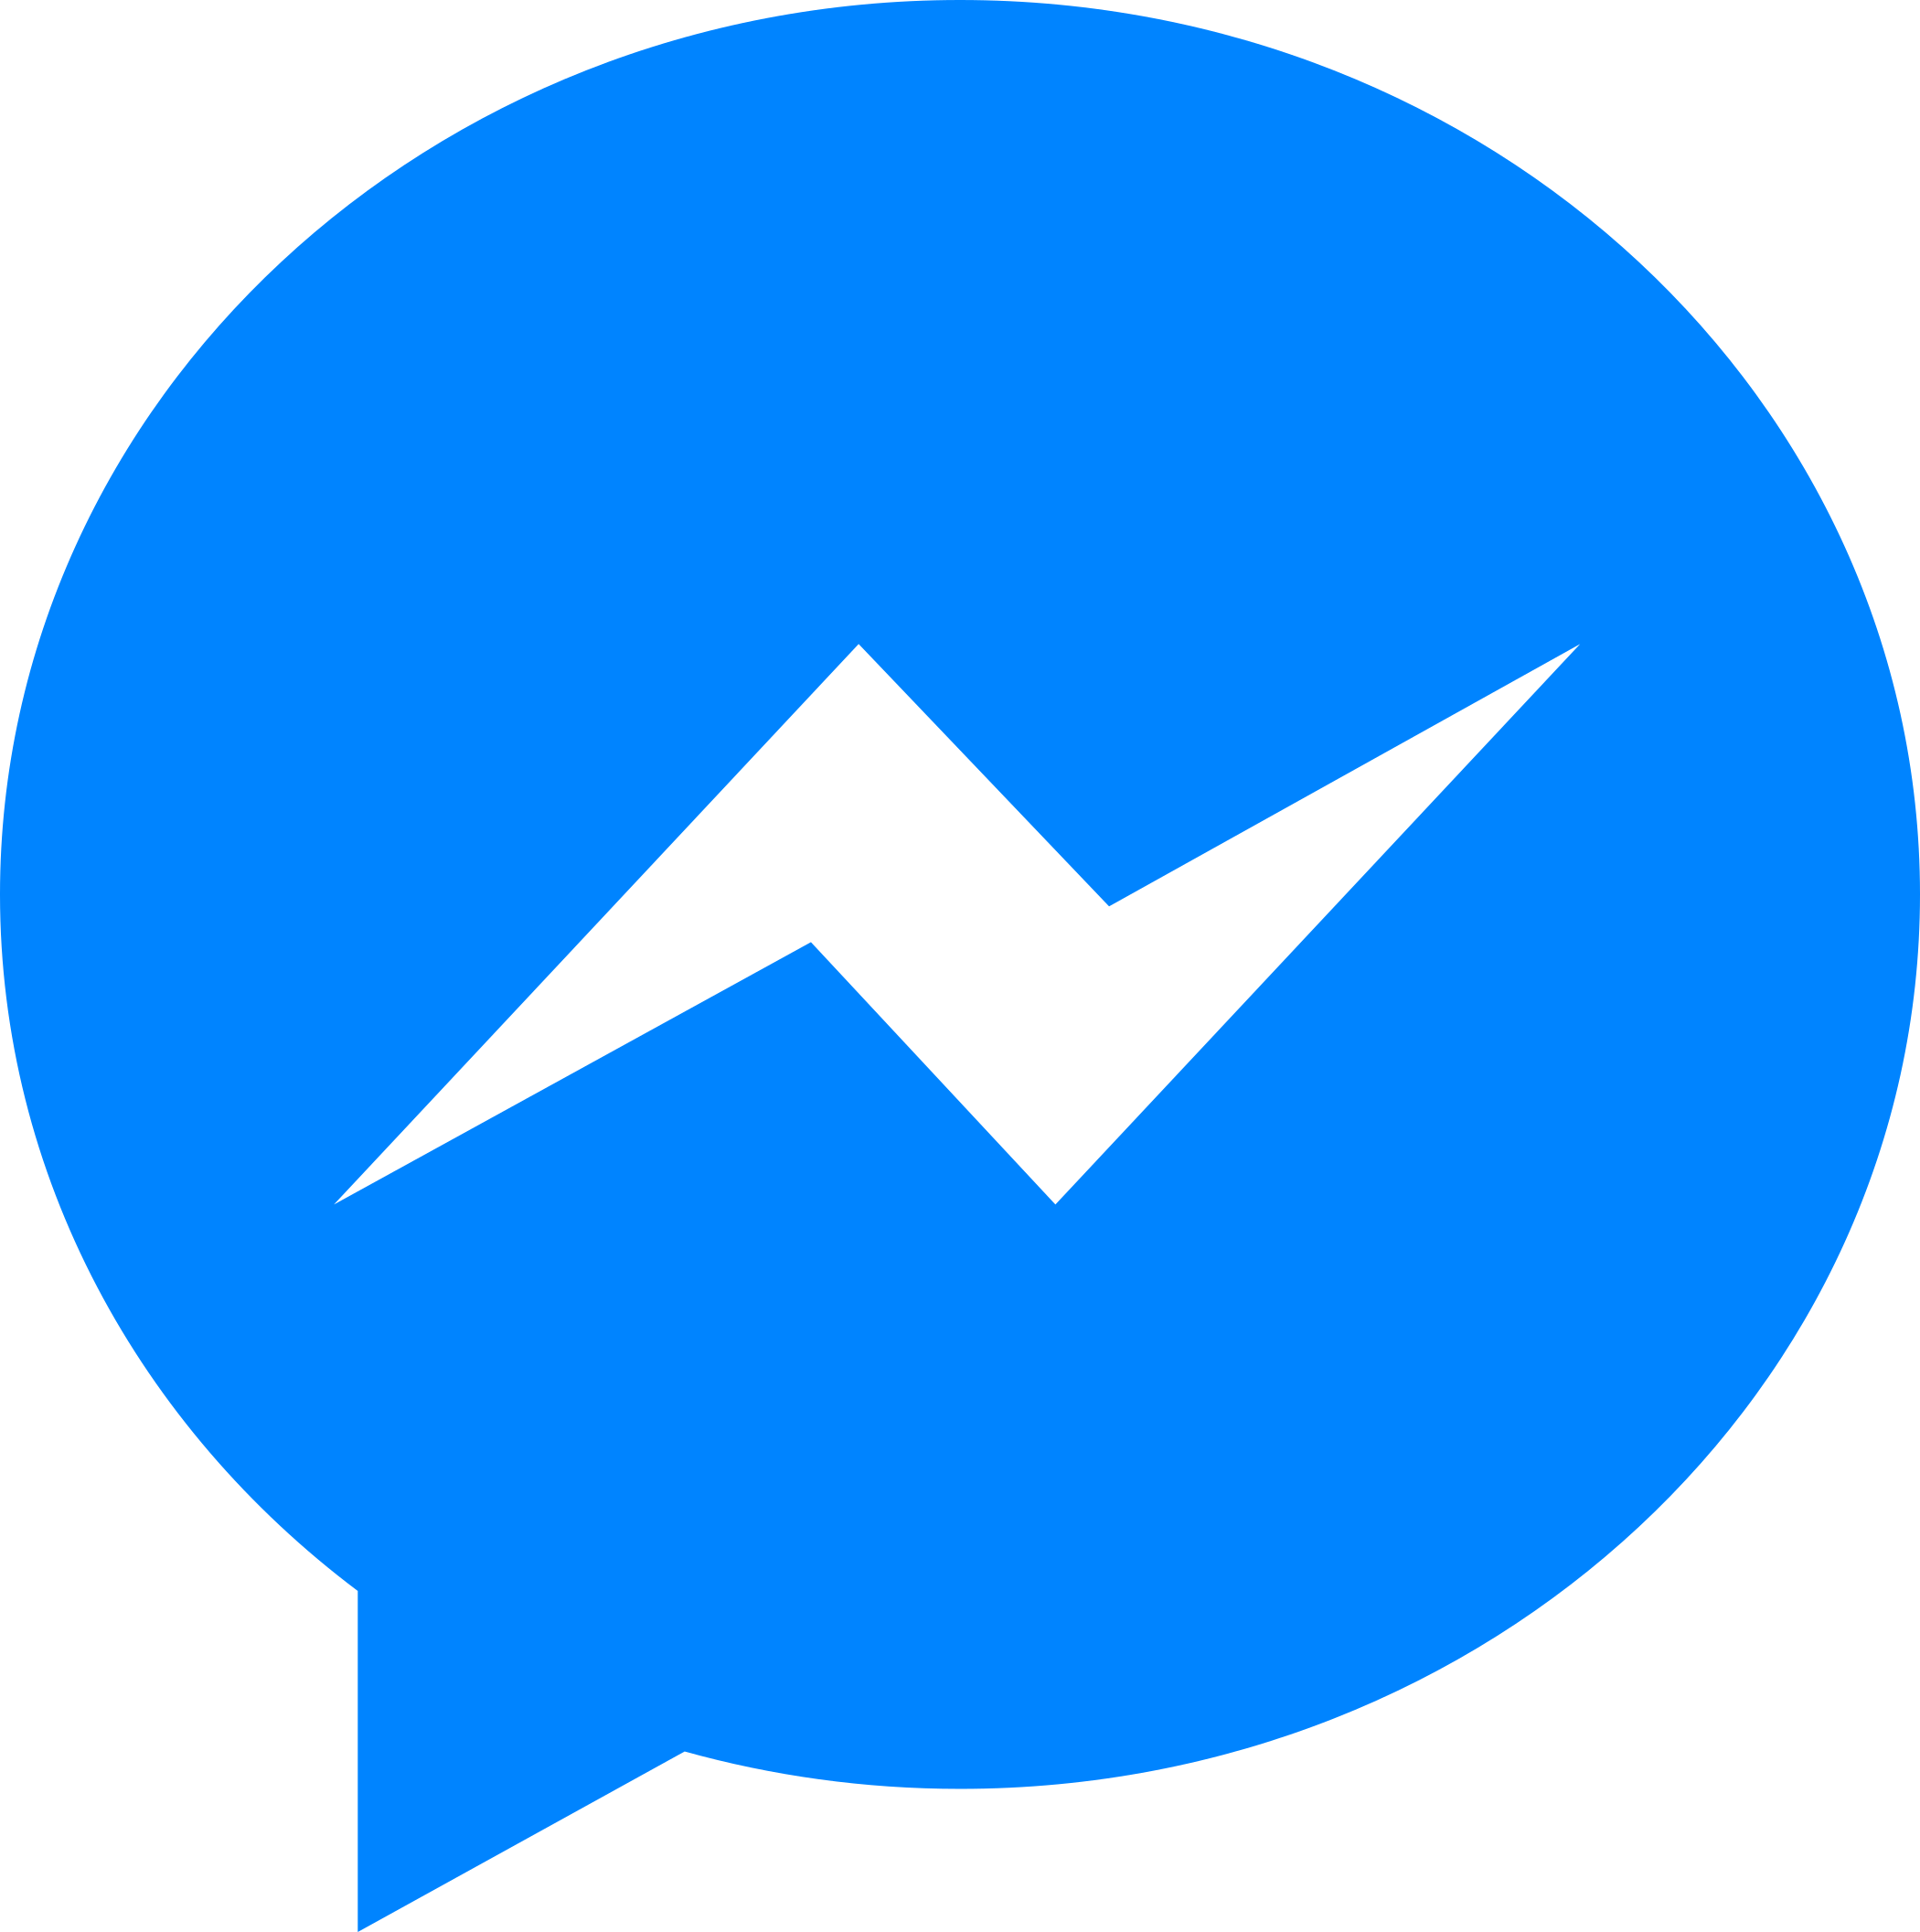 facebook messenger logo 1 - Facebook Messenger Logo